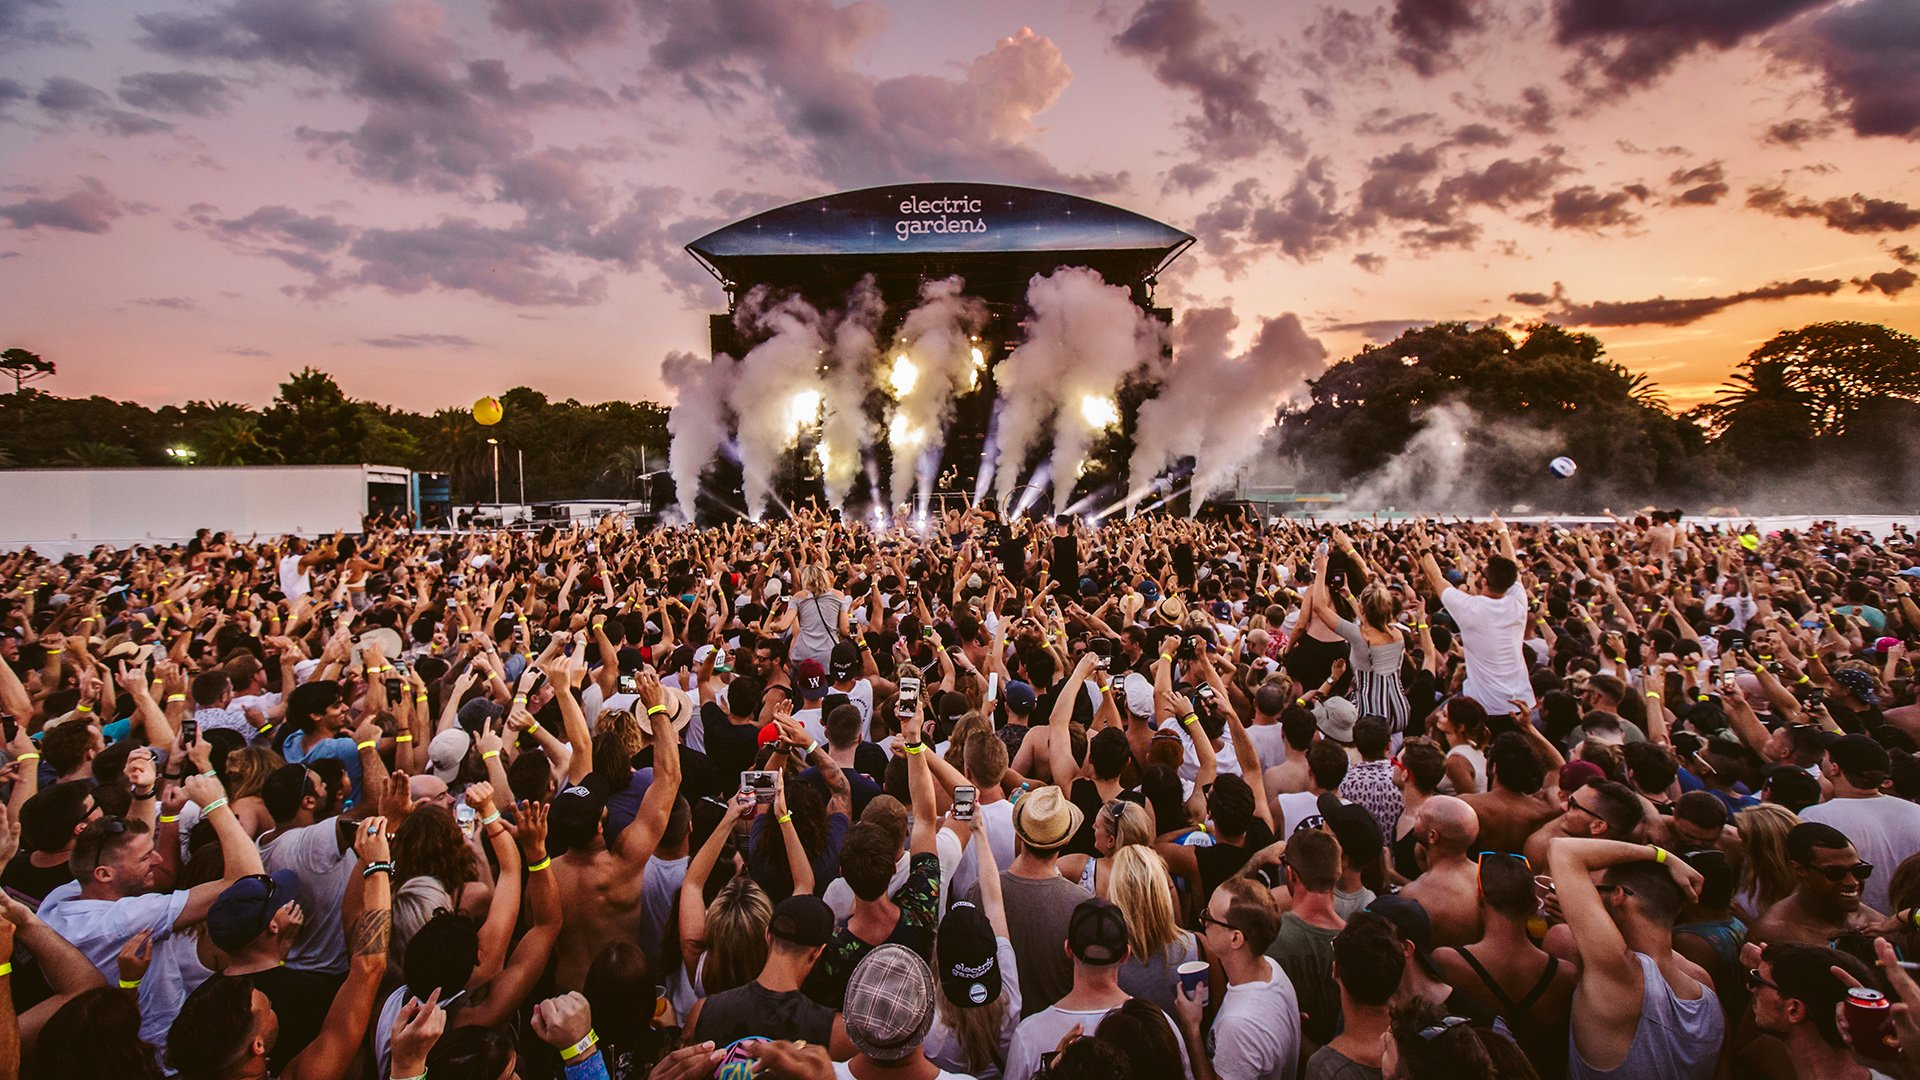 Electric Gardens Festival in Australia 2019 - Best Time